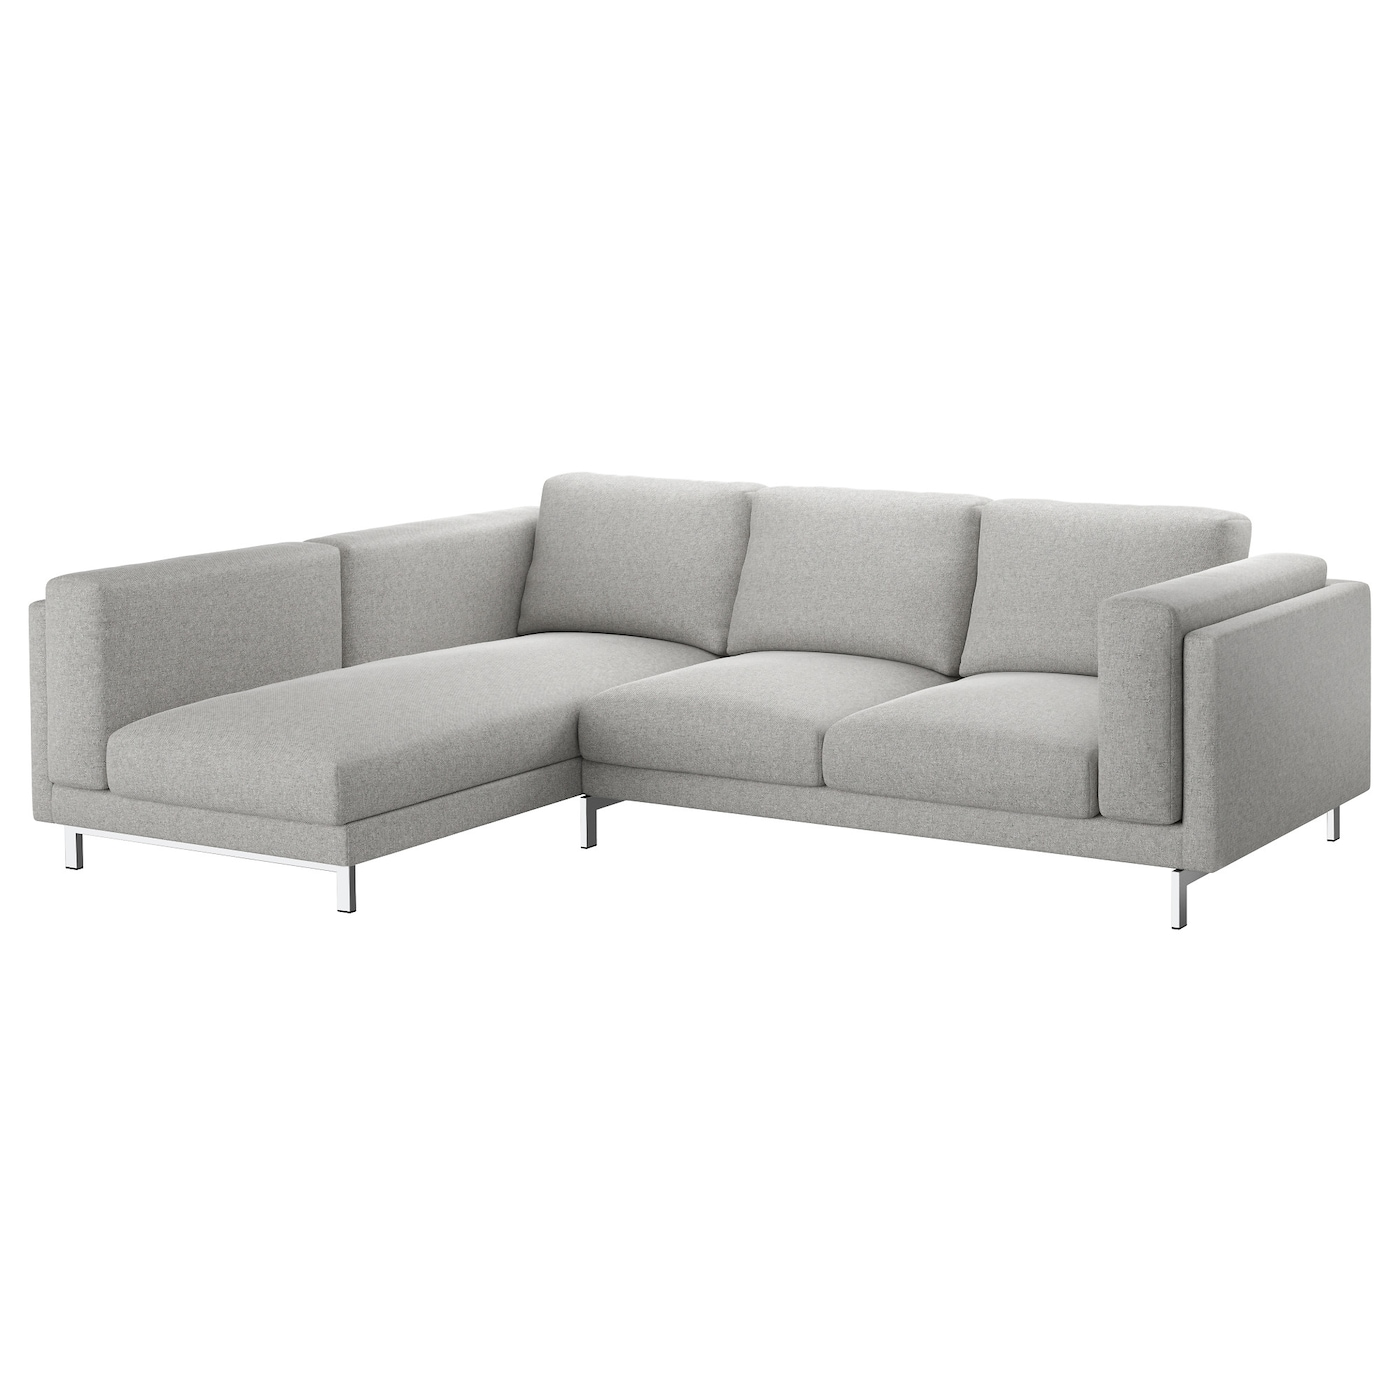 nockeby two seat sofa w chaise longue left tallmyra white. Black Bedroom Furniture Sets. Home Design Ideas